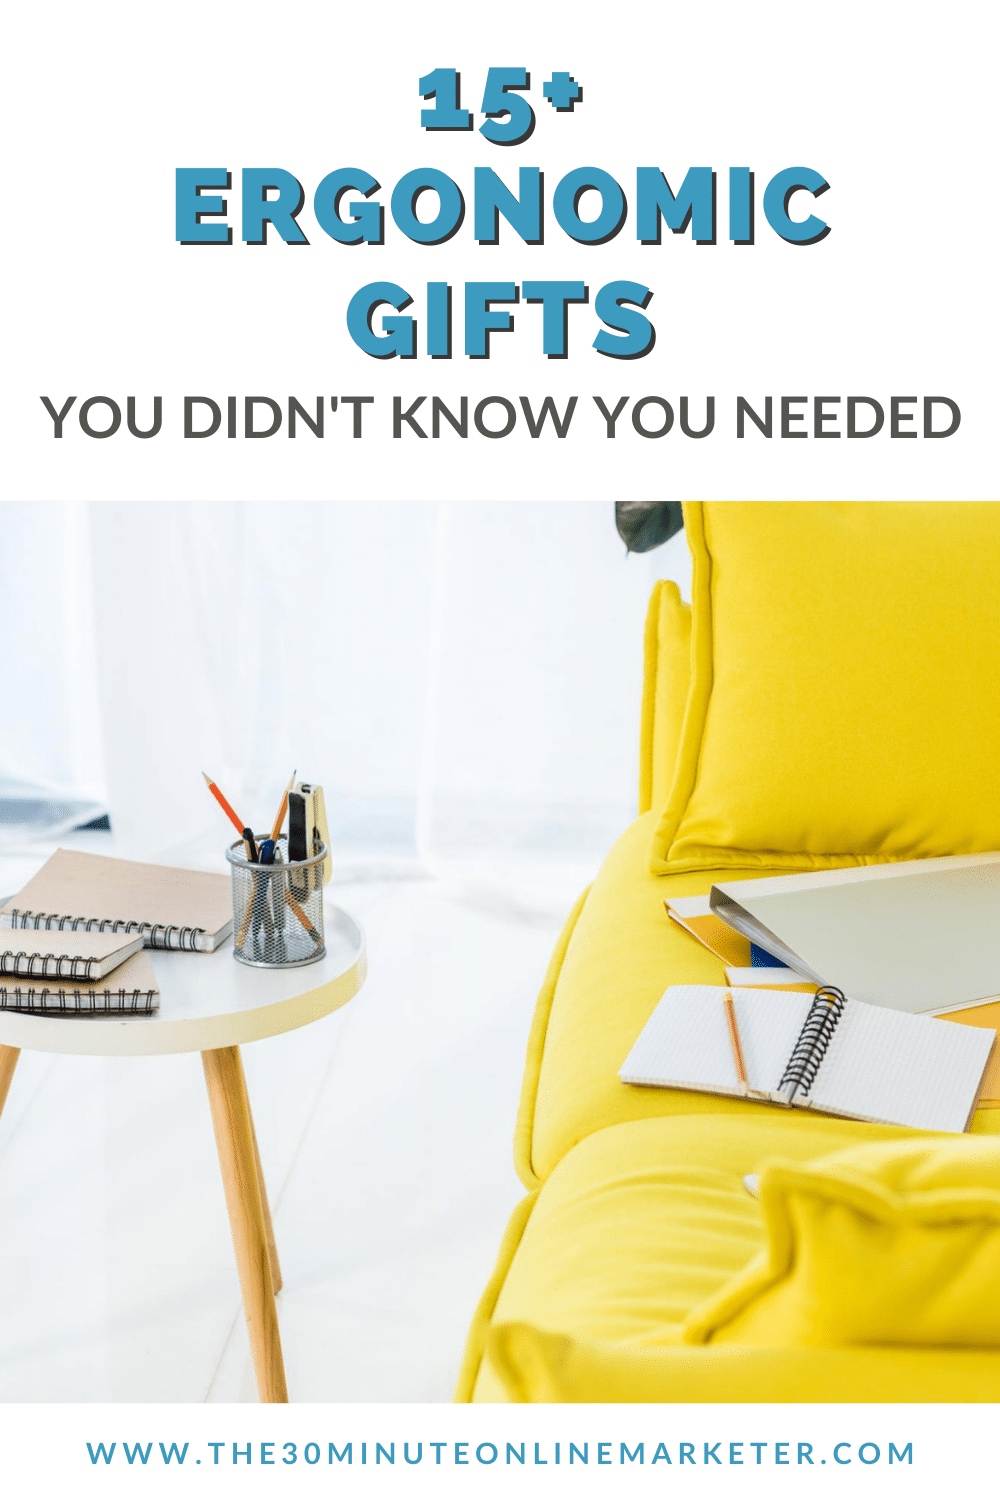 Ergonomic Gifts You Didn't Know You Needed